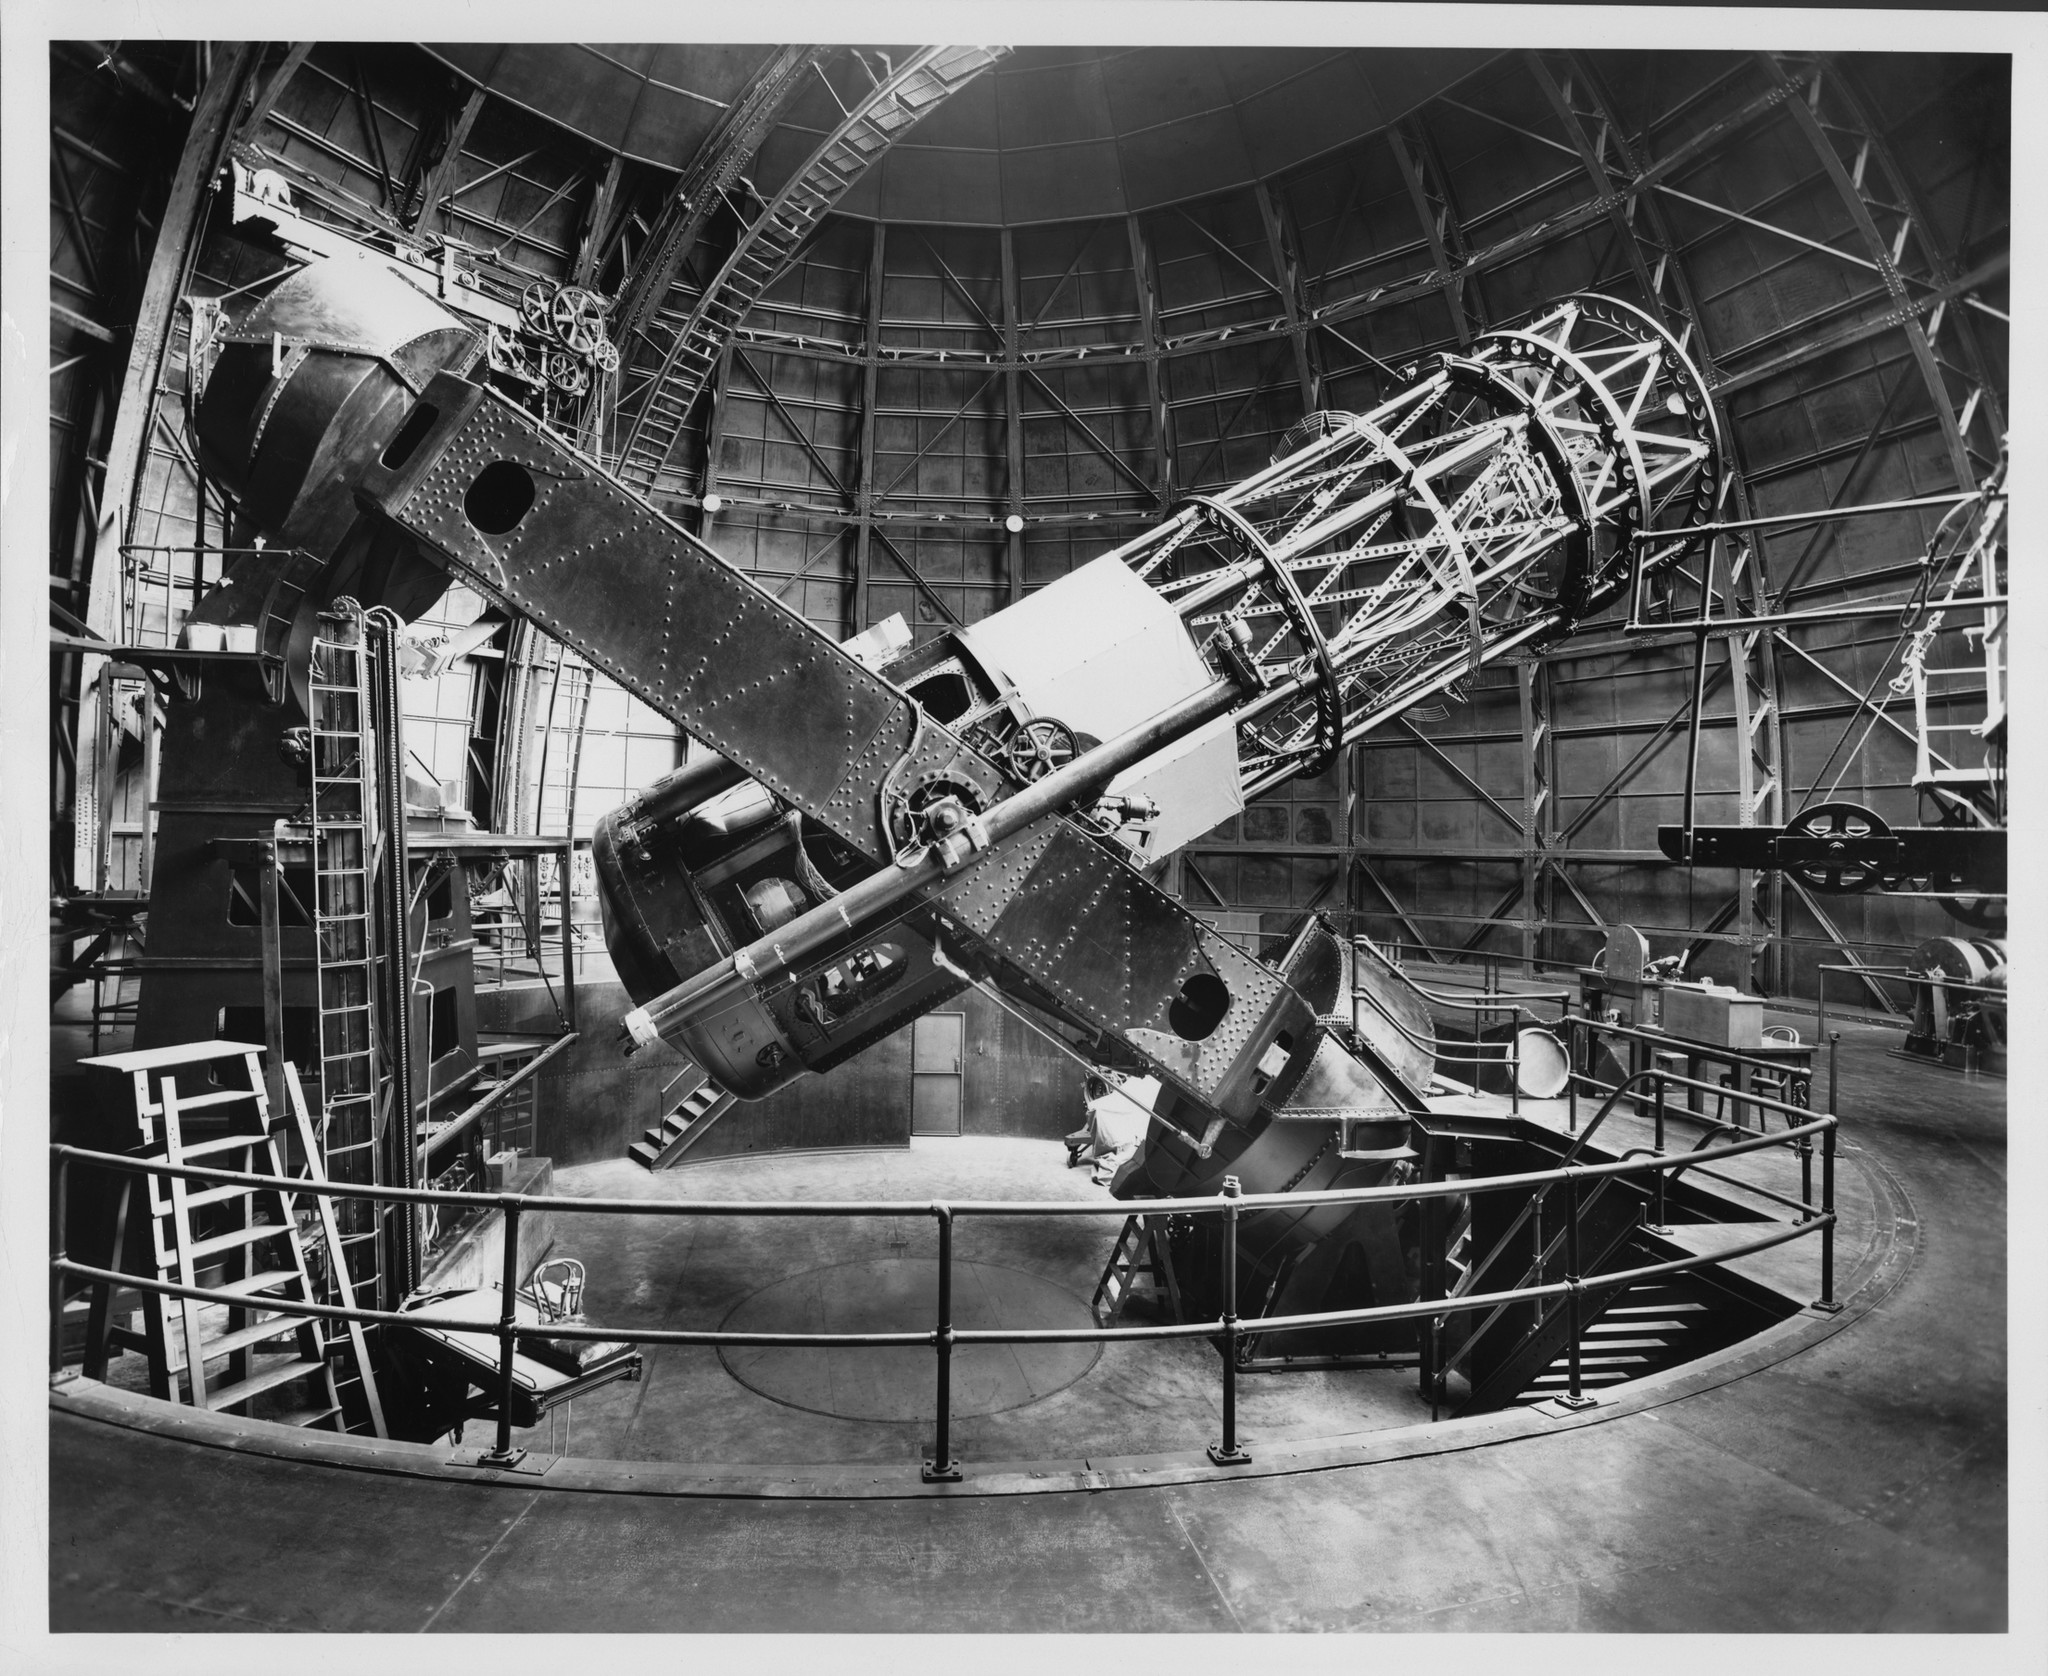 The Hooker 100-inch reflecting telescope, side view with tube 40 degrees from horizontal. Edwin Hubble's chair, on an elevating platform, is visible at left.